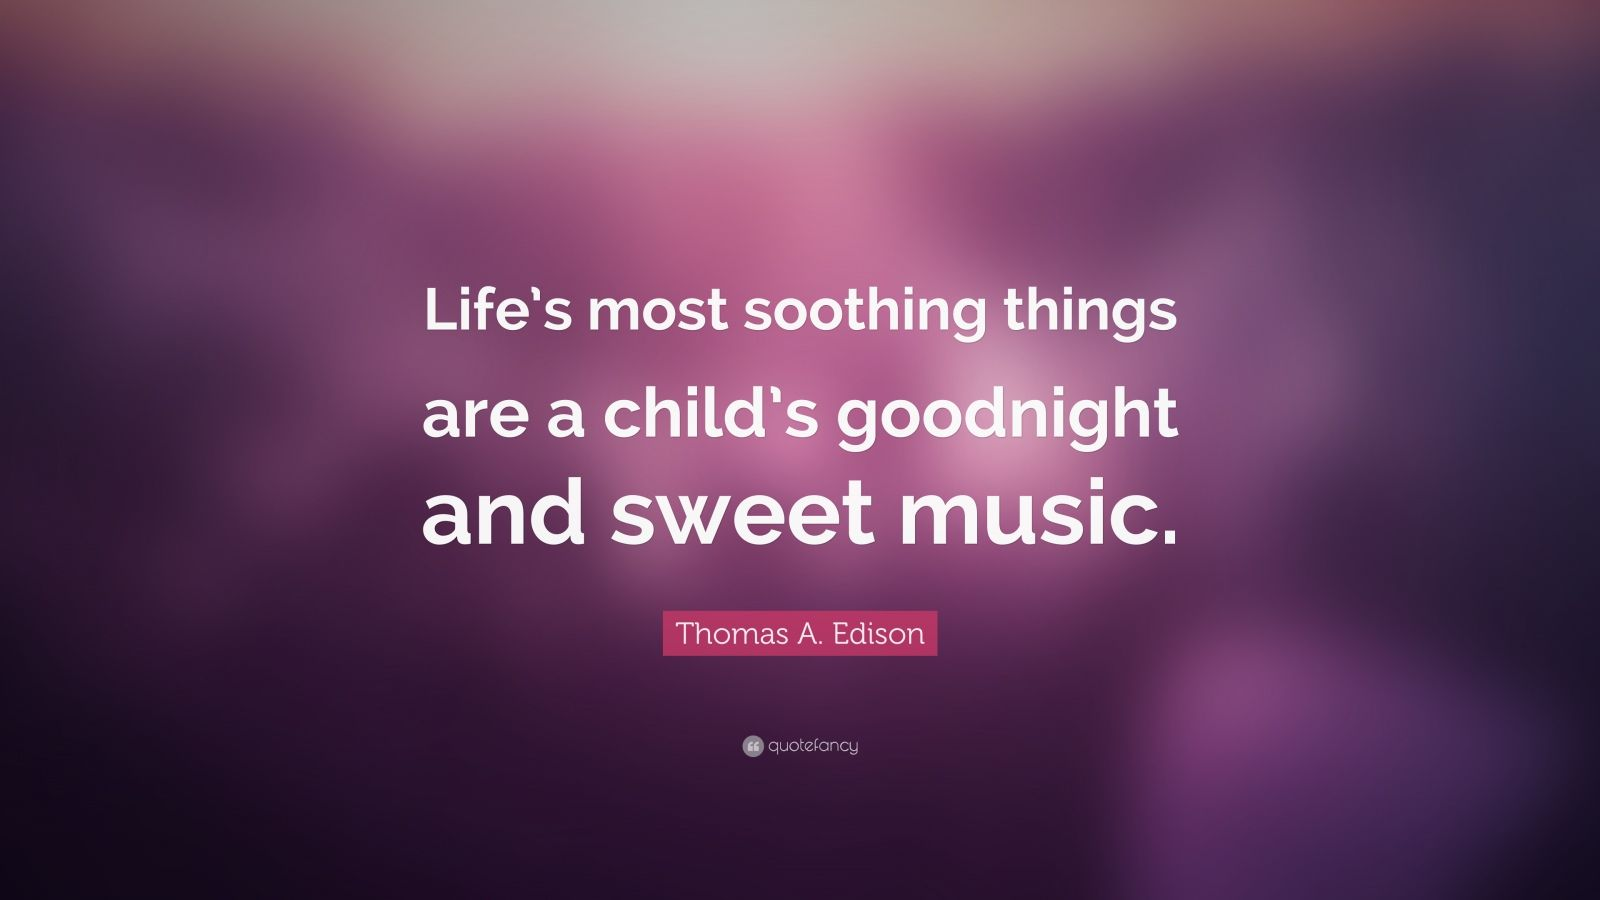 """Thomas A. Edison Quote: """"Life's most soothing things are a child's goodnight and sweet music."""""""